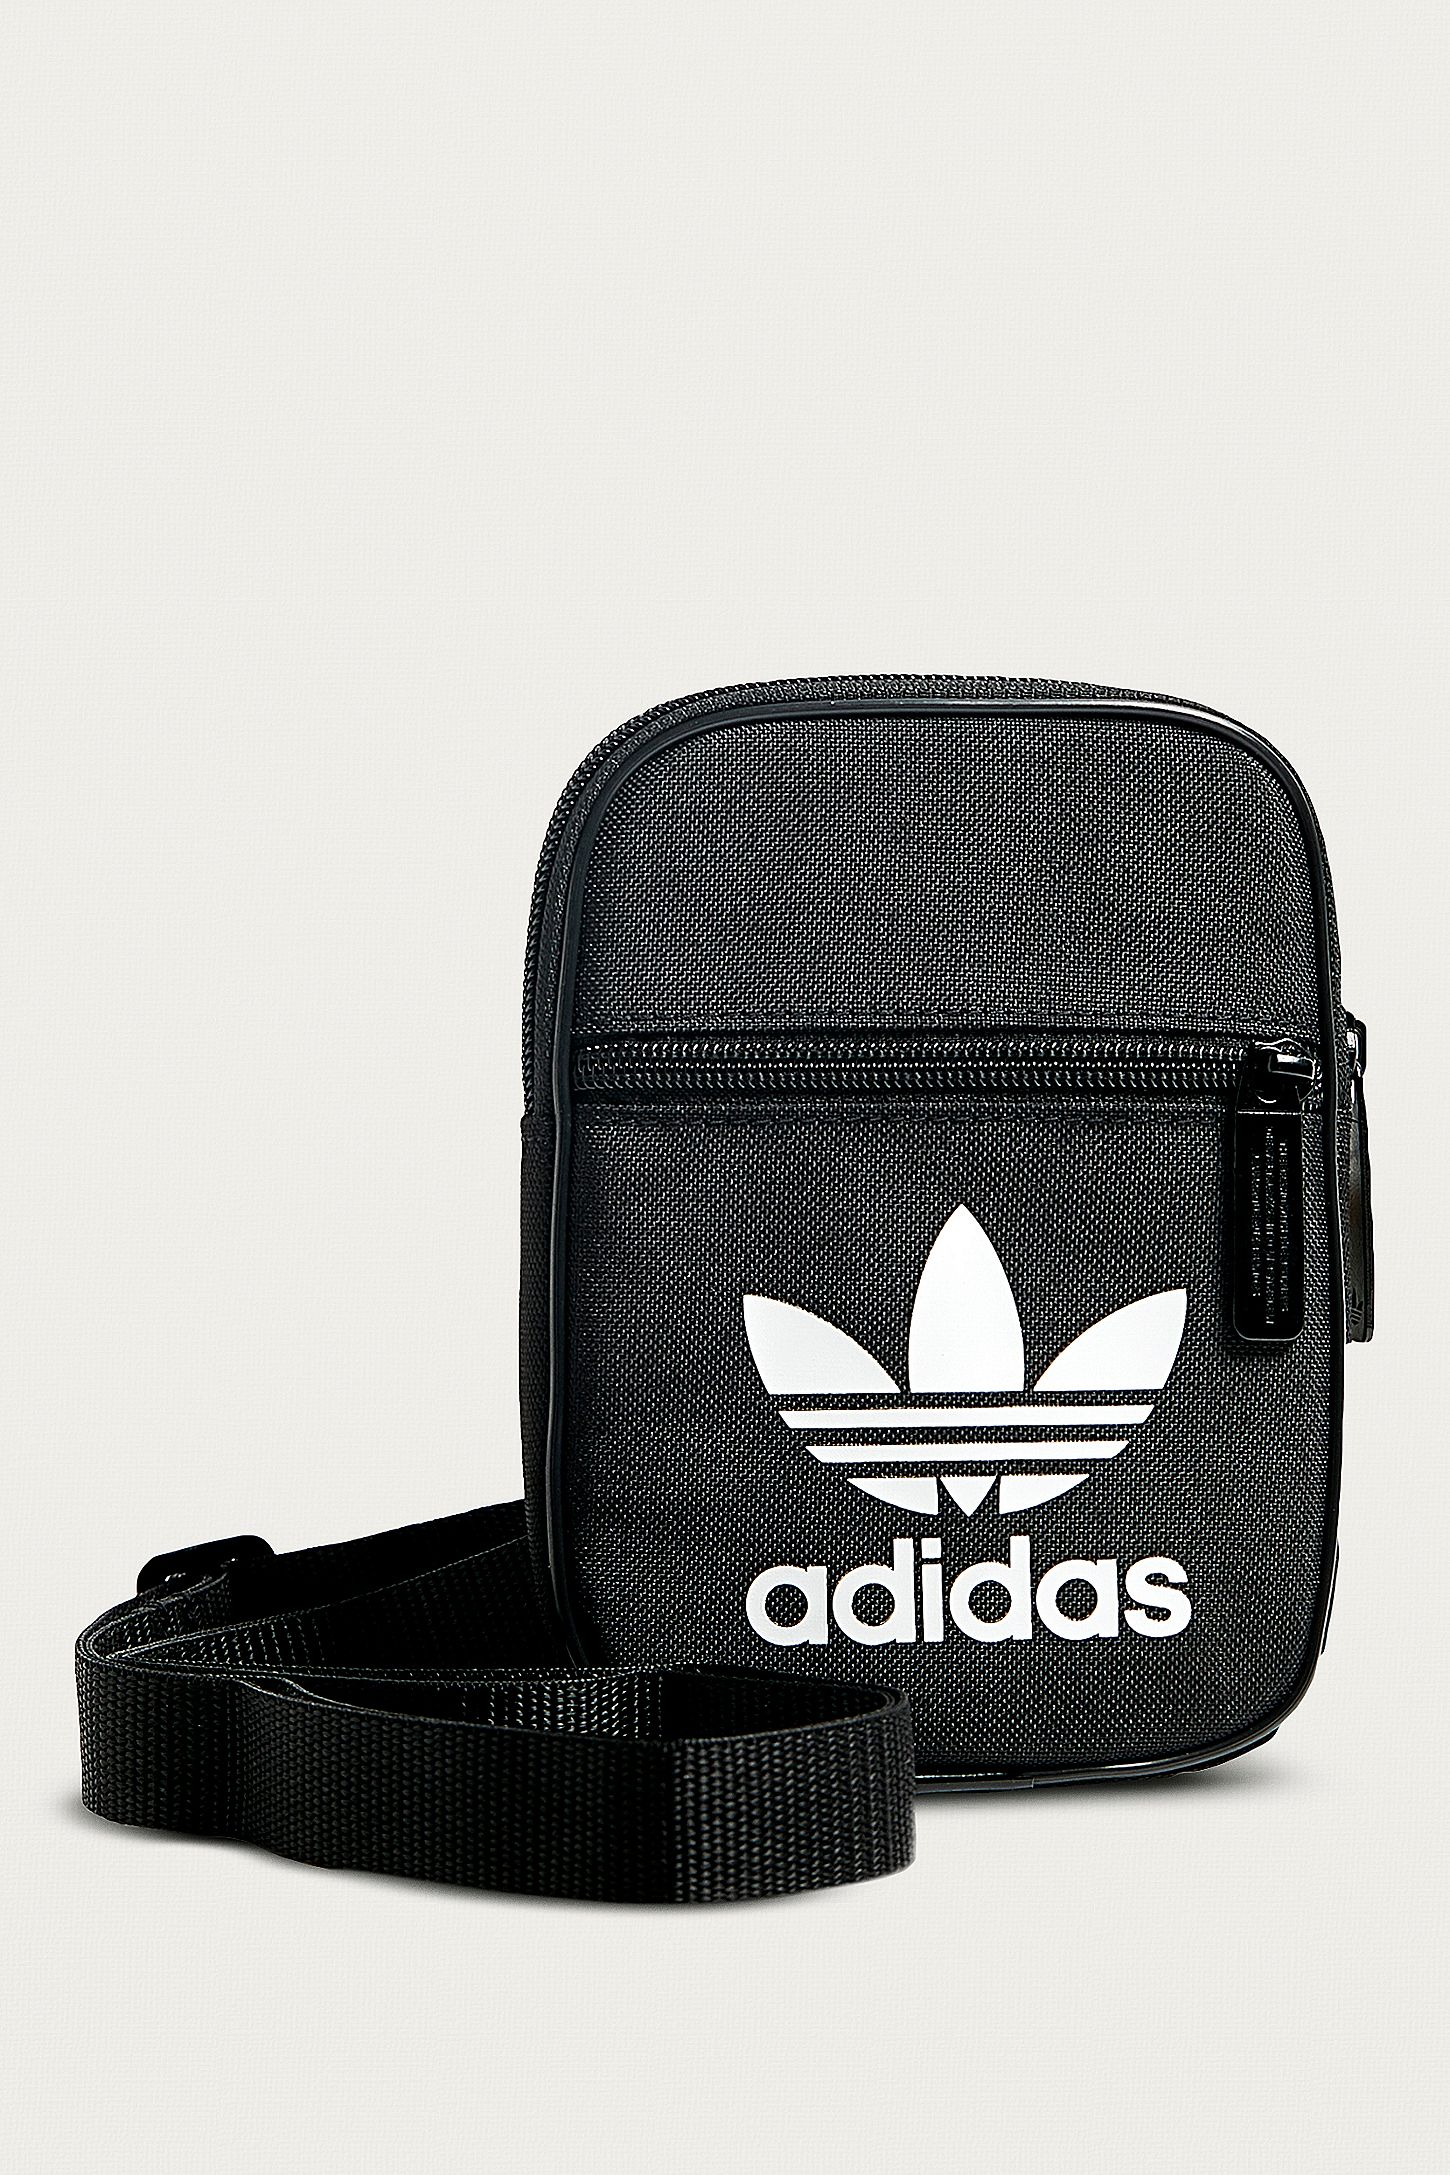 d2838f28f2 adidas Originals Trefoil Festival Crossbody. Click on image to zoom. Hover  to zoom. Double Tap to Zoom